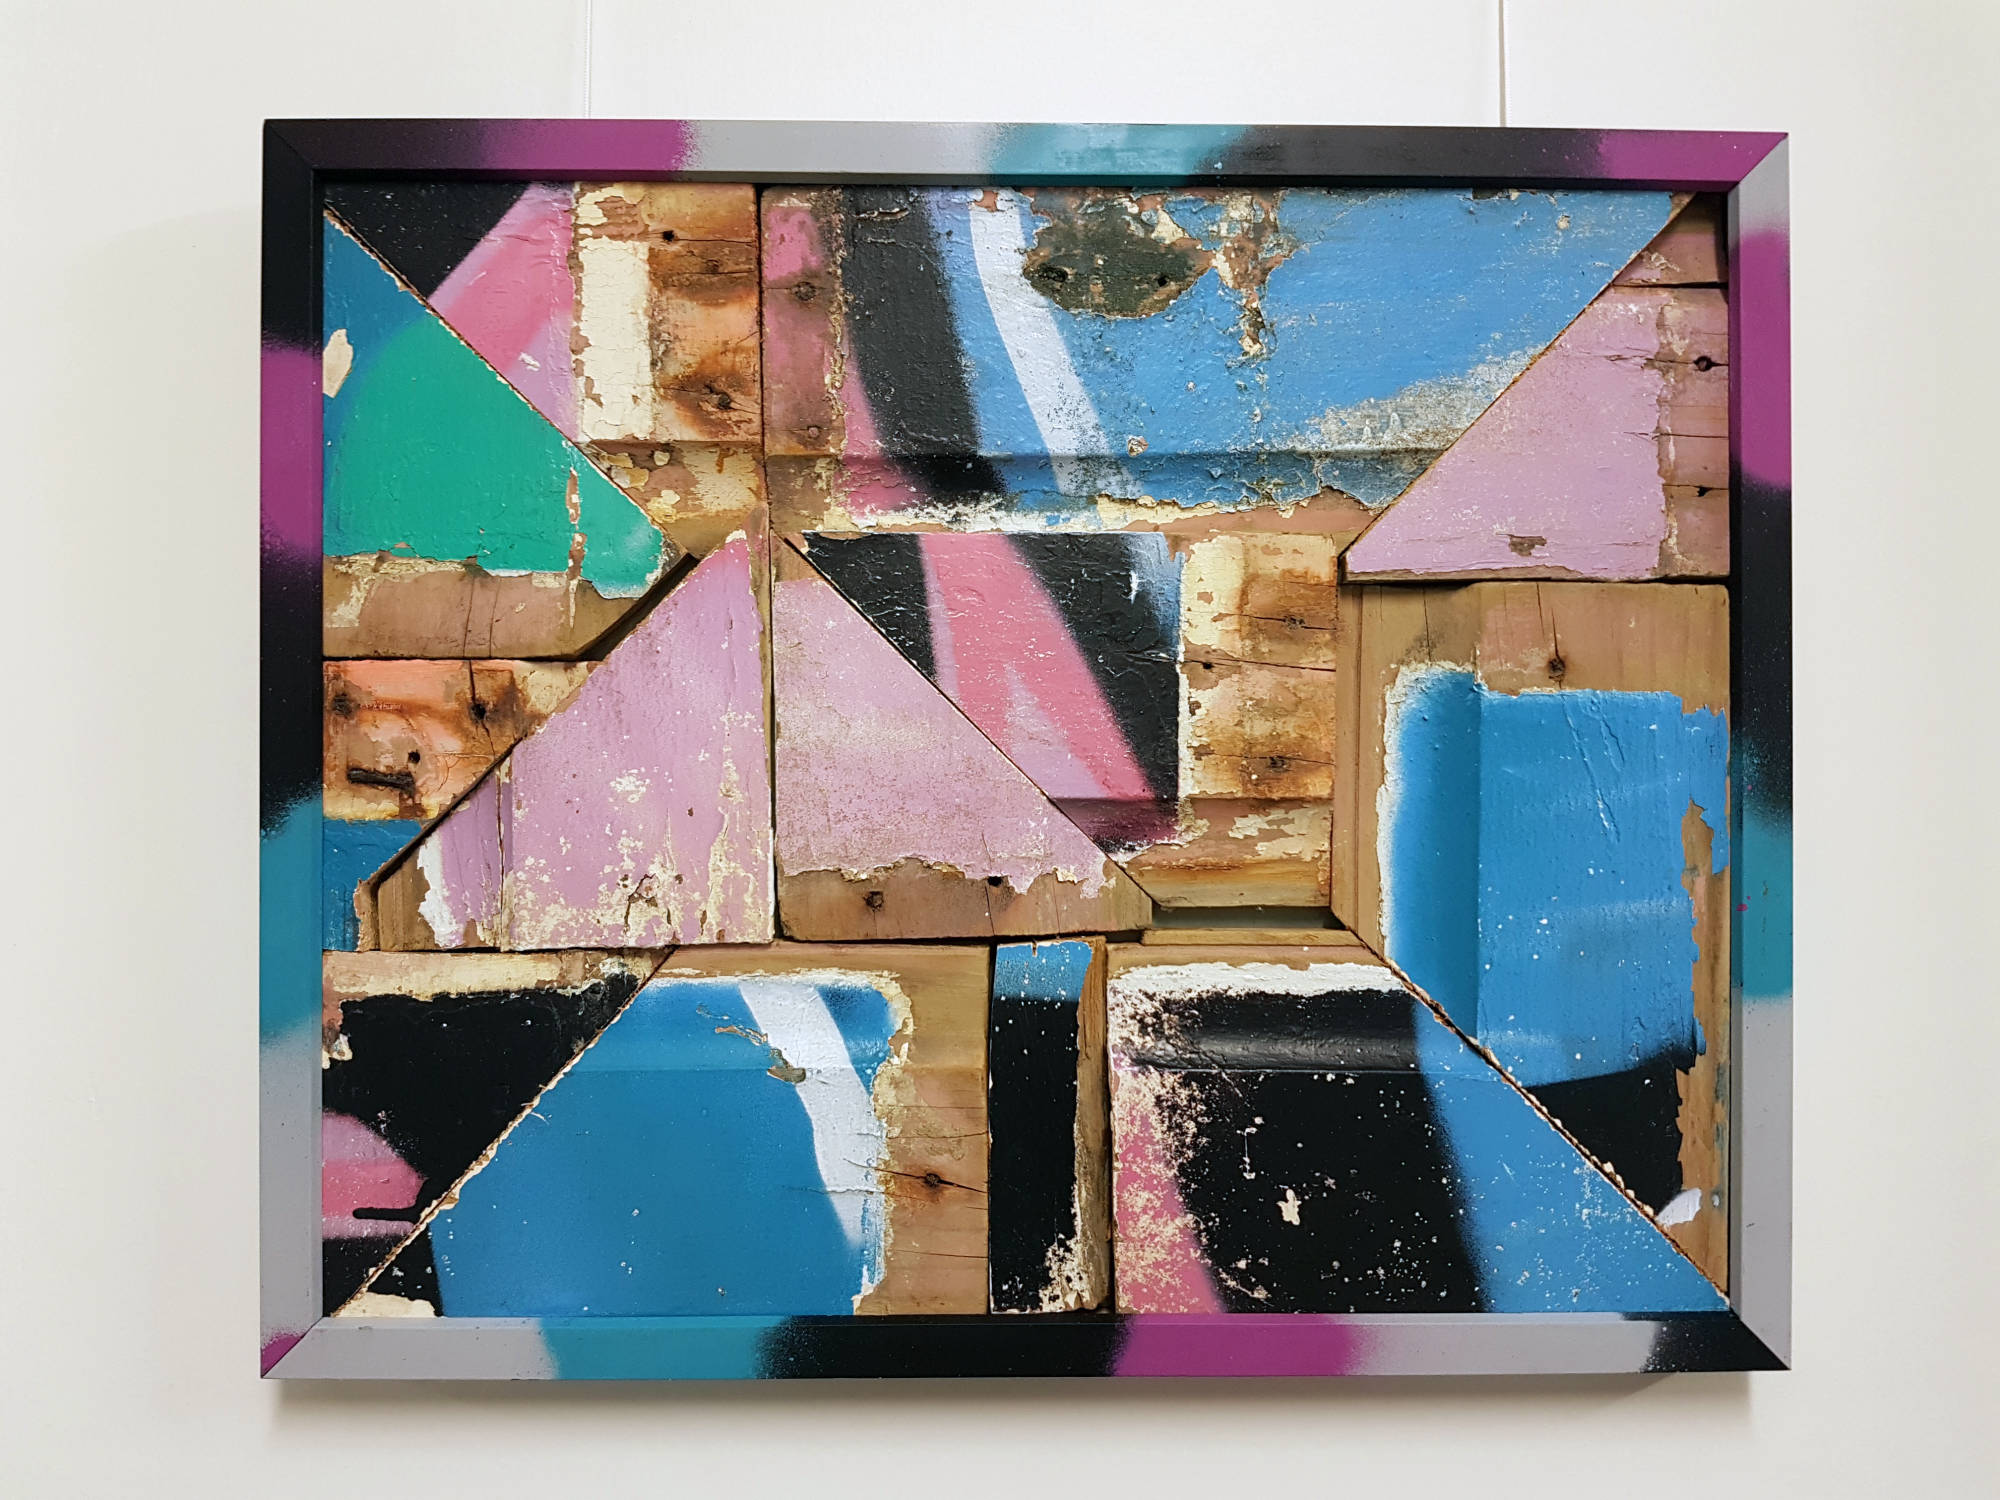 Upcycled graffiti weatherboard assemblage in frame # 1.  Dimensions: 550mm x 450mm. Price: $300